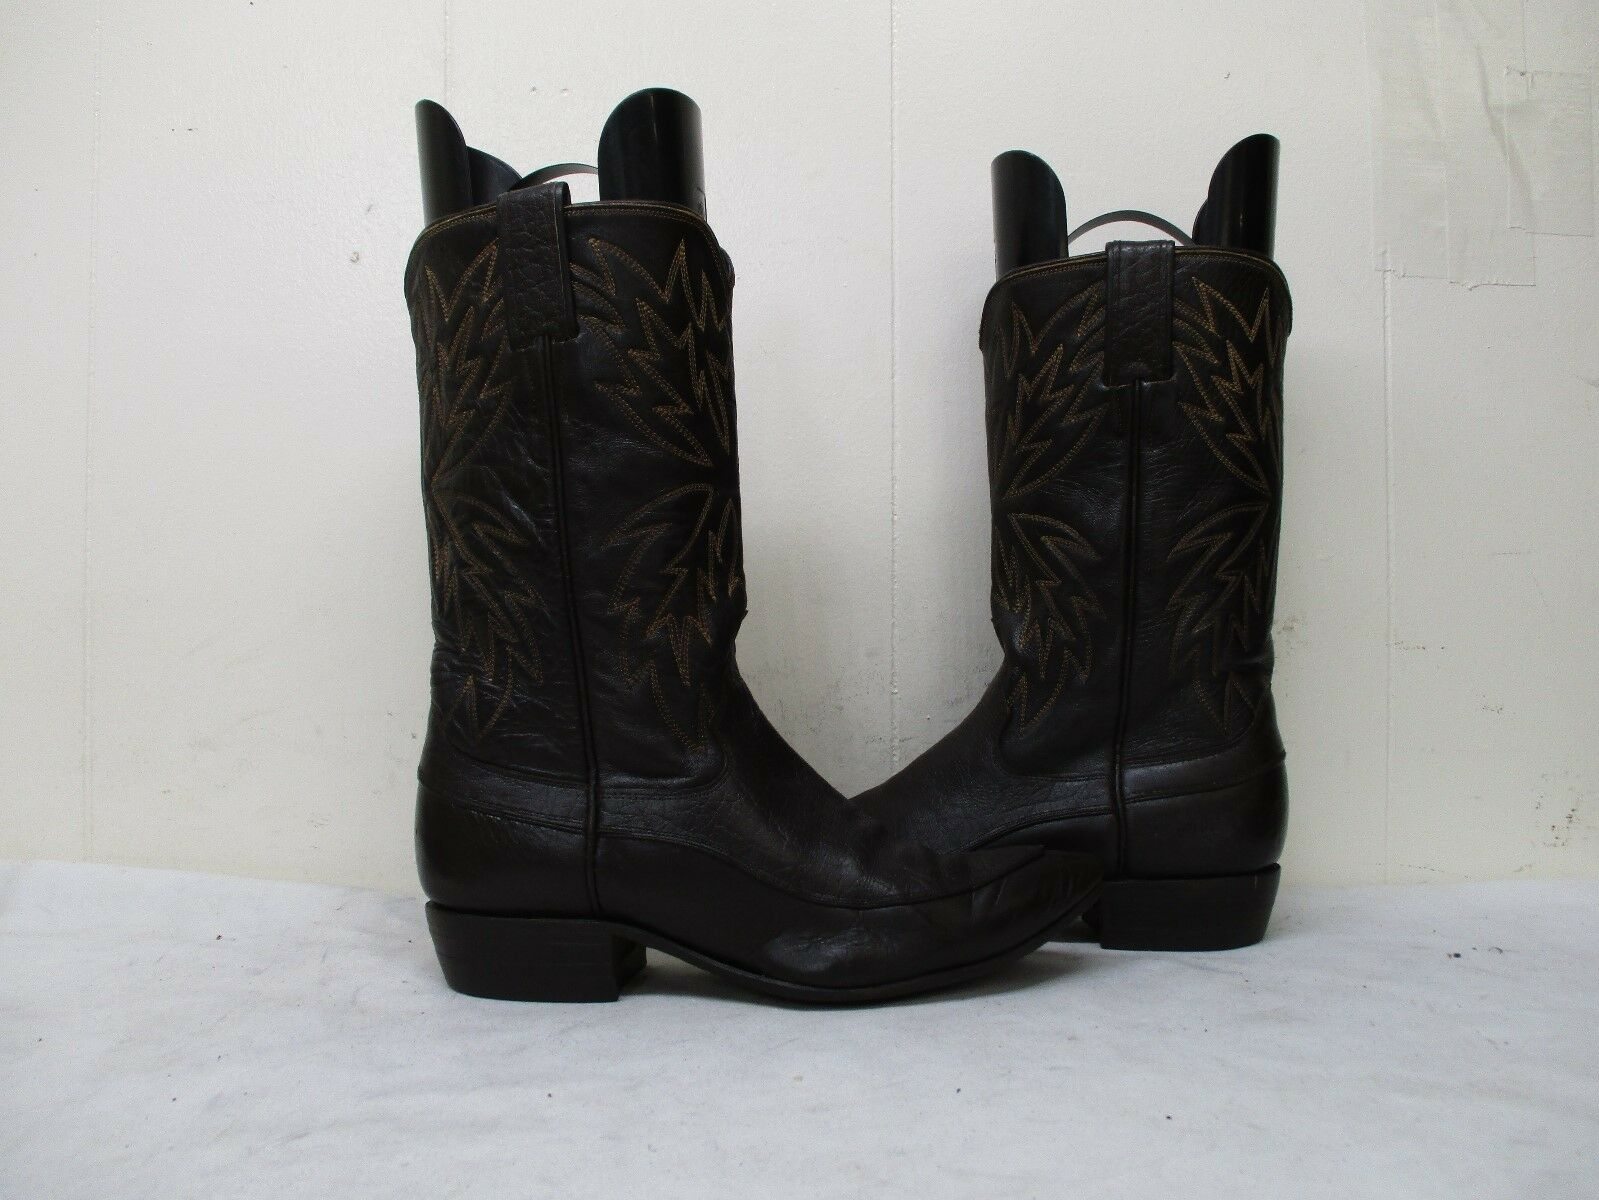 JUSTIN White Label Brown Leather Vintage Cowboy Boots Style L4027 Size 7.5 B USA